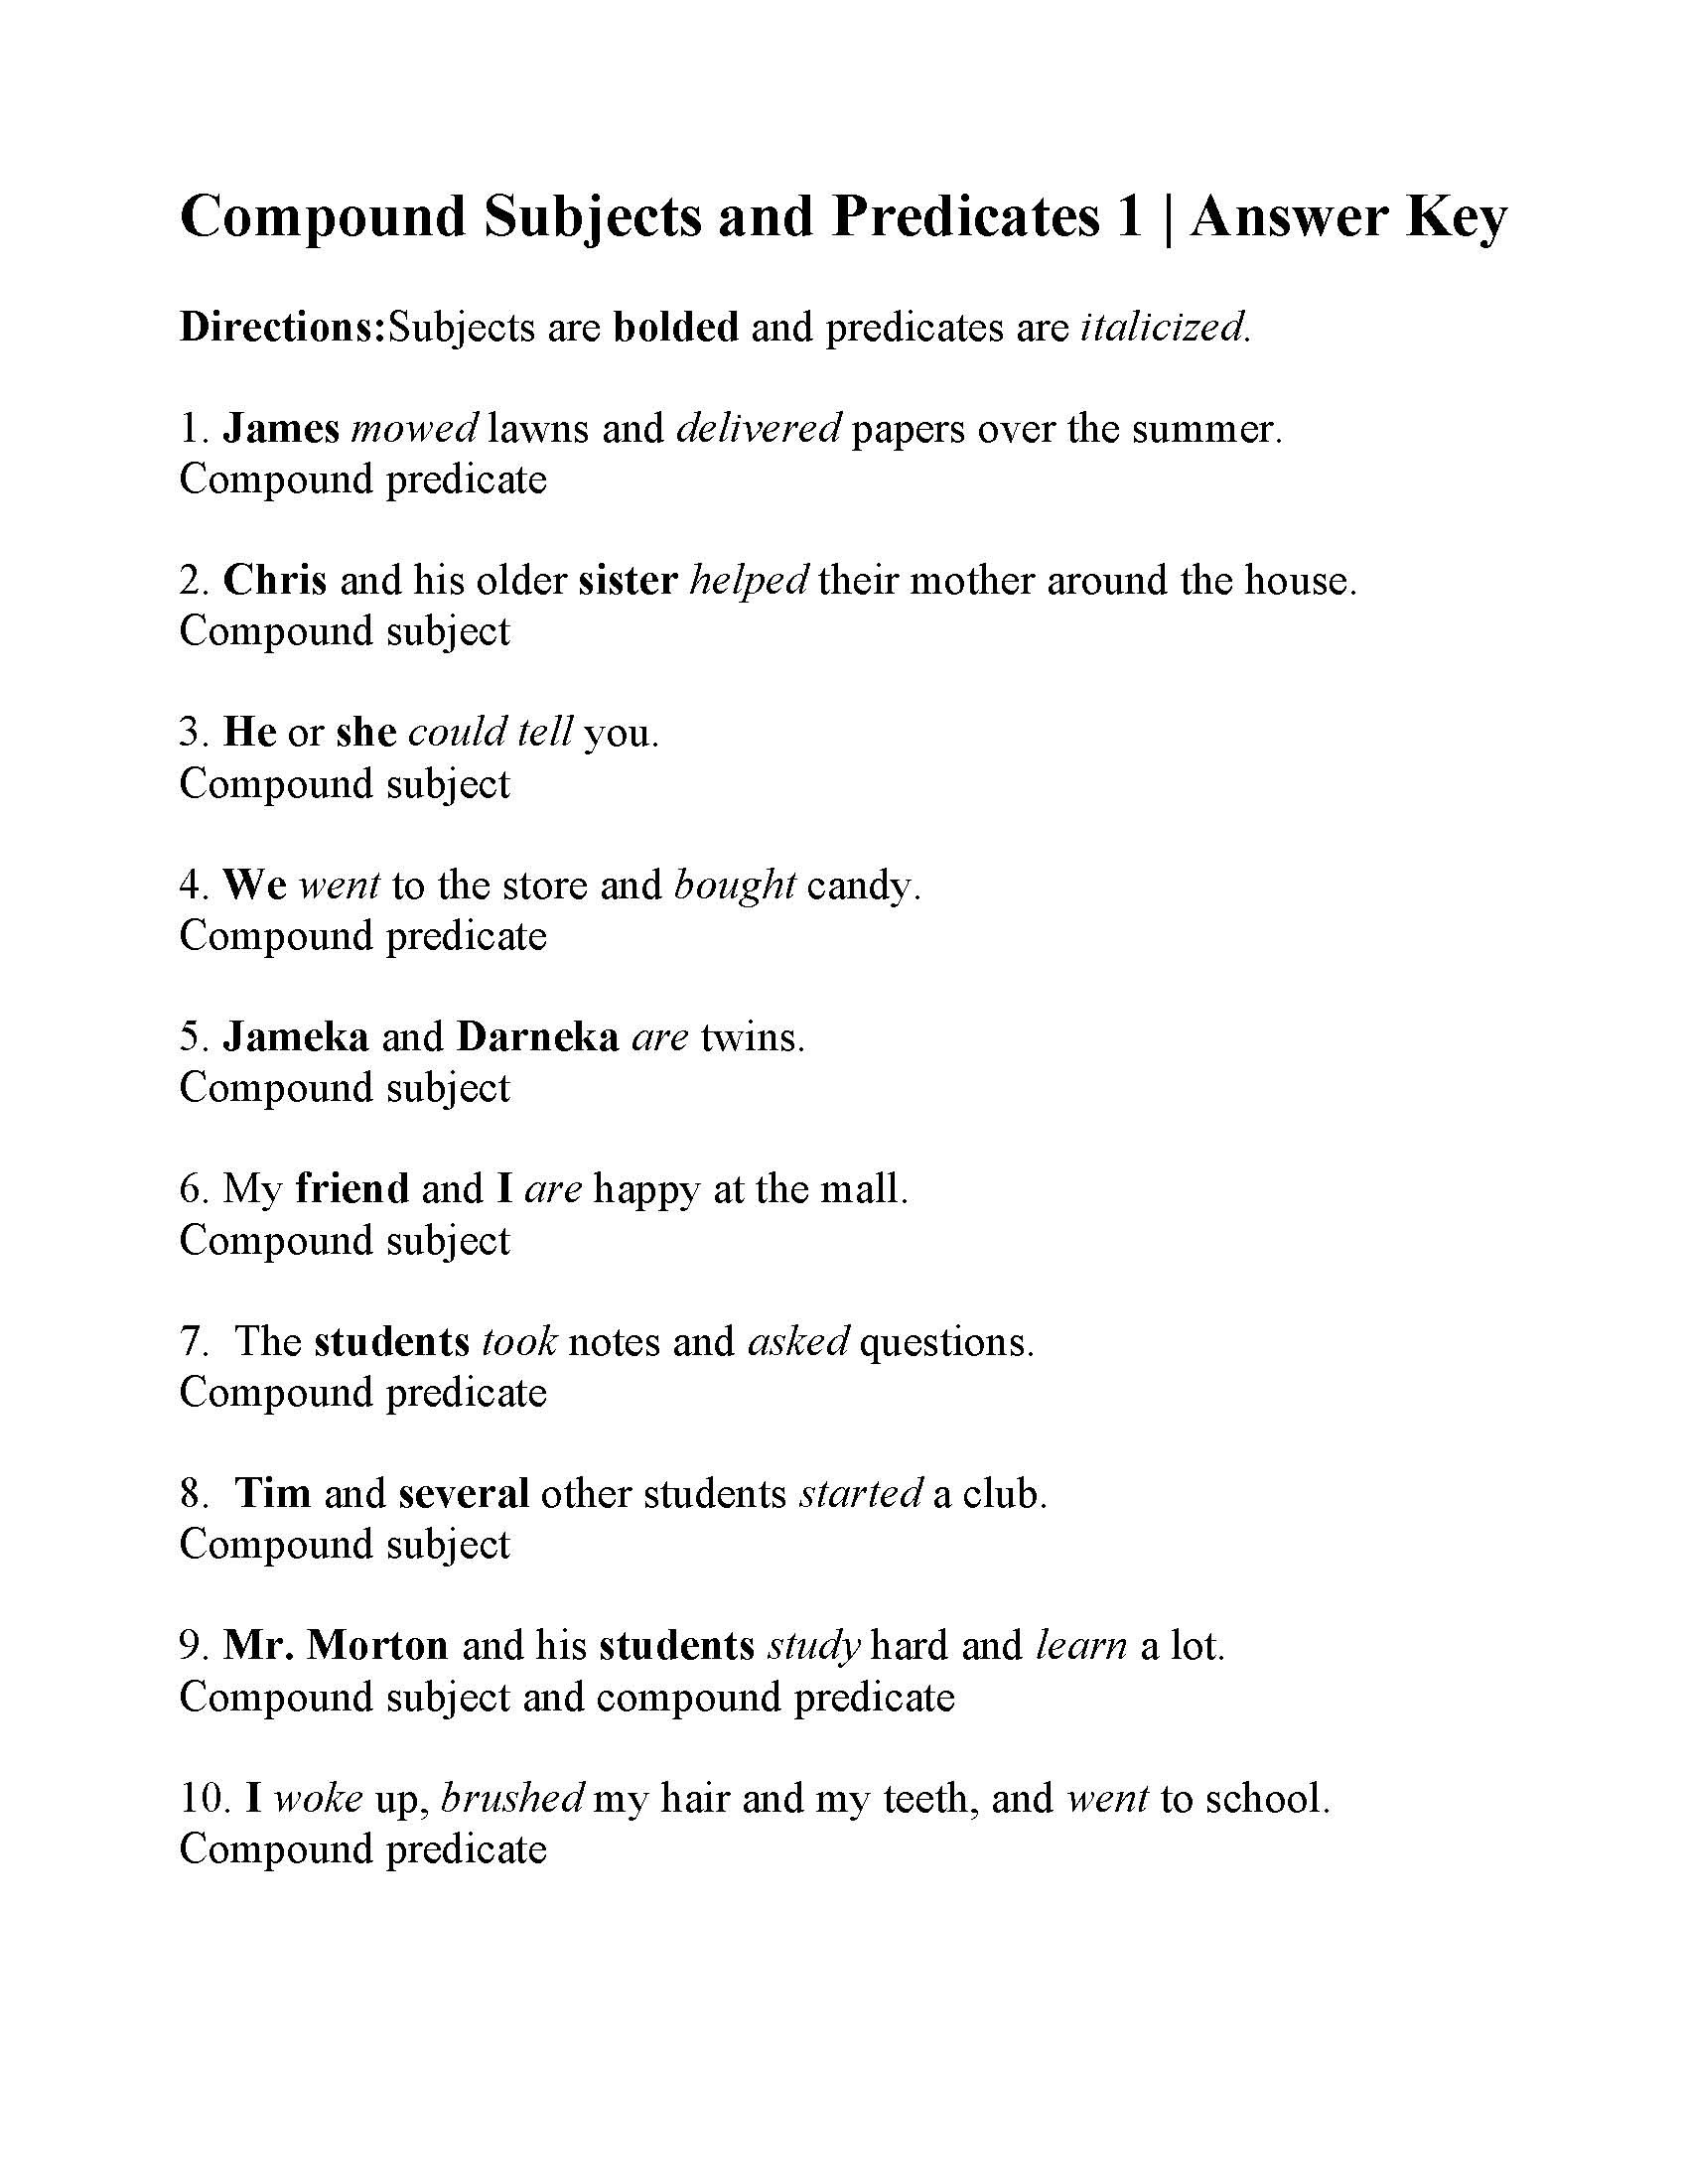 Subject and Predicate Worksheet Pound Subjects and Predicates Worksheet